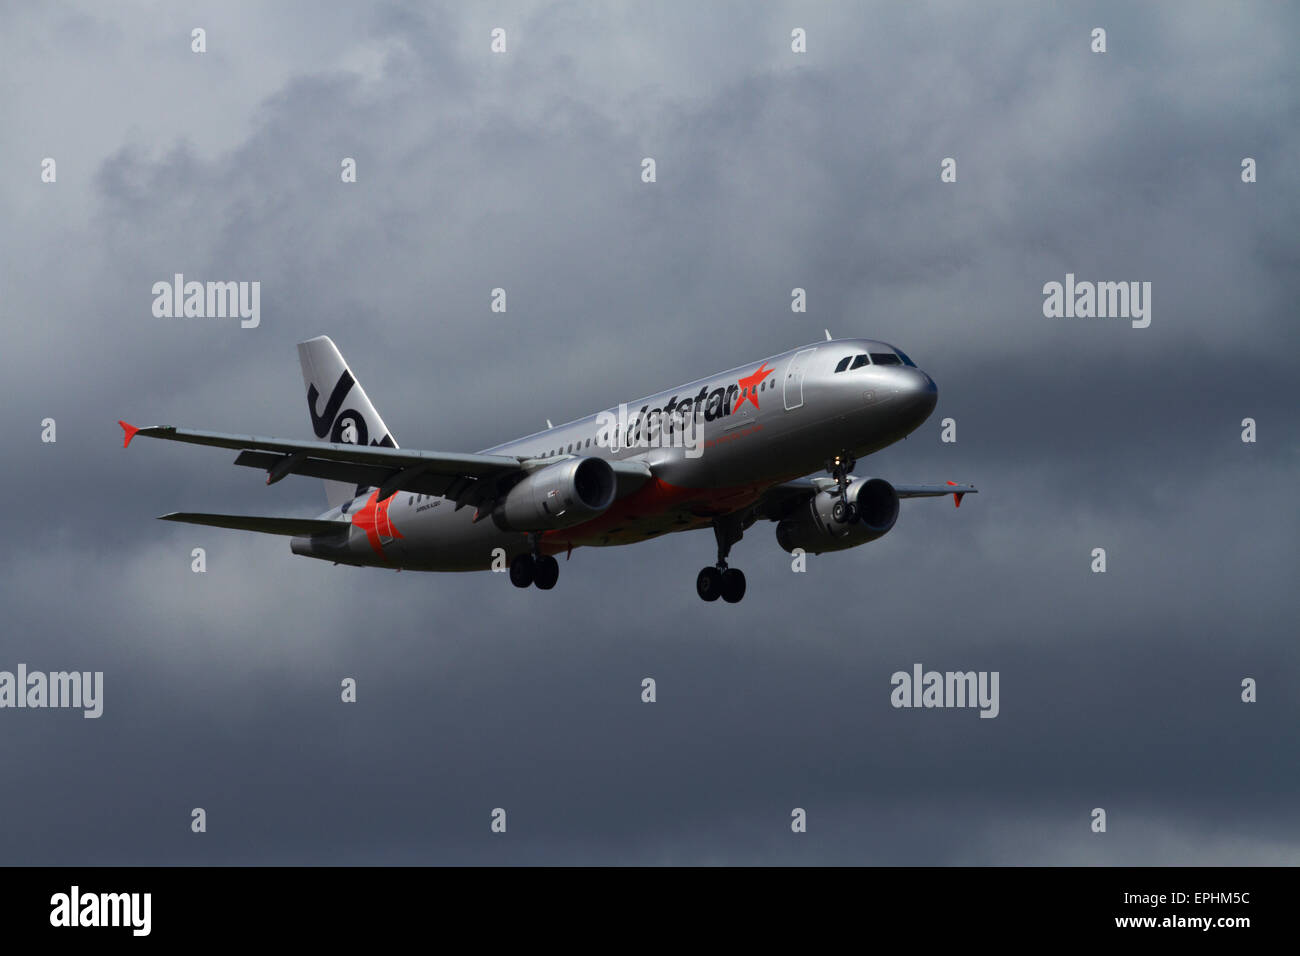 Jetstar Airbus A320 landing at Auckland International Airport, Auckland, North Island, New Zealand - Stock Image